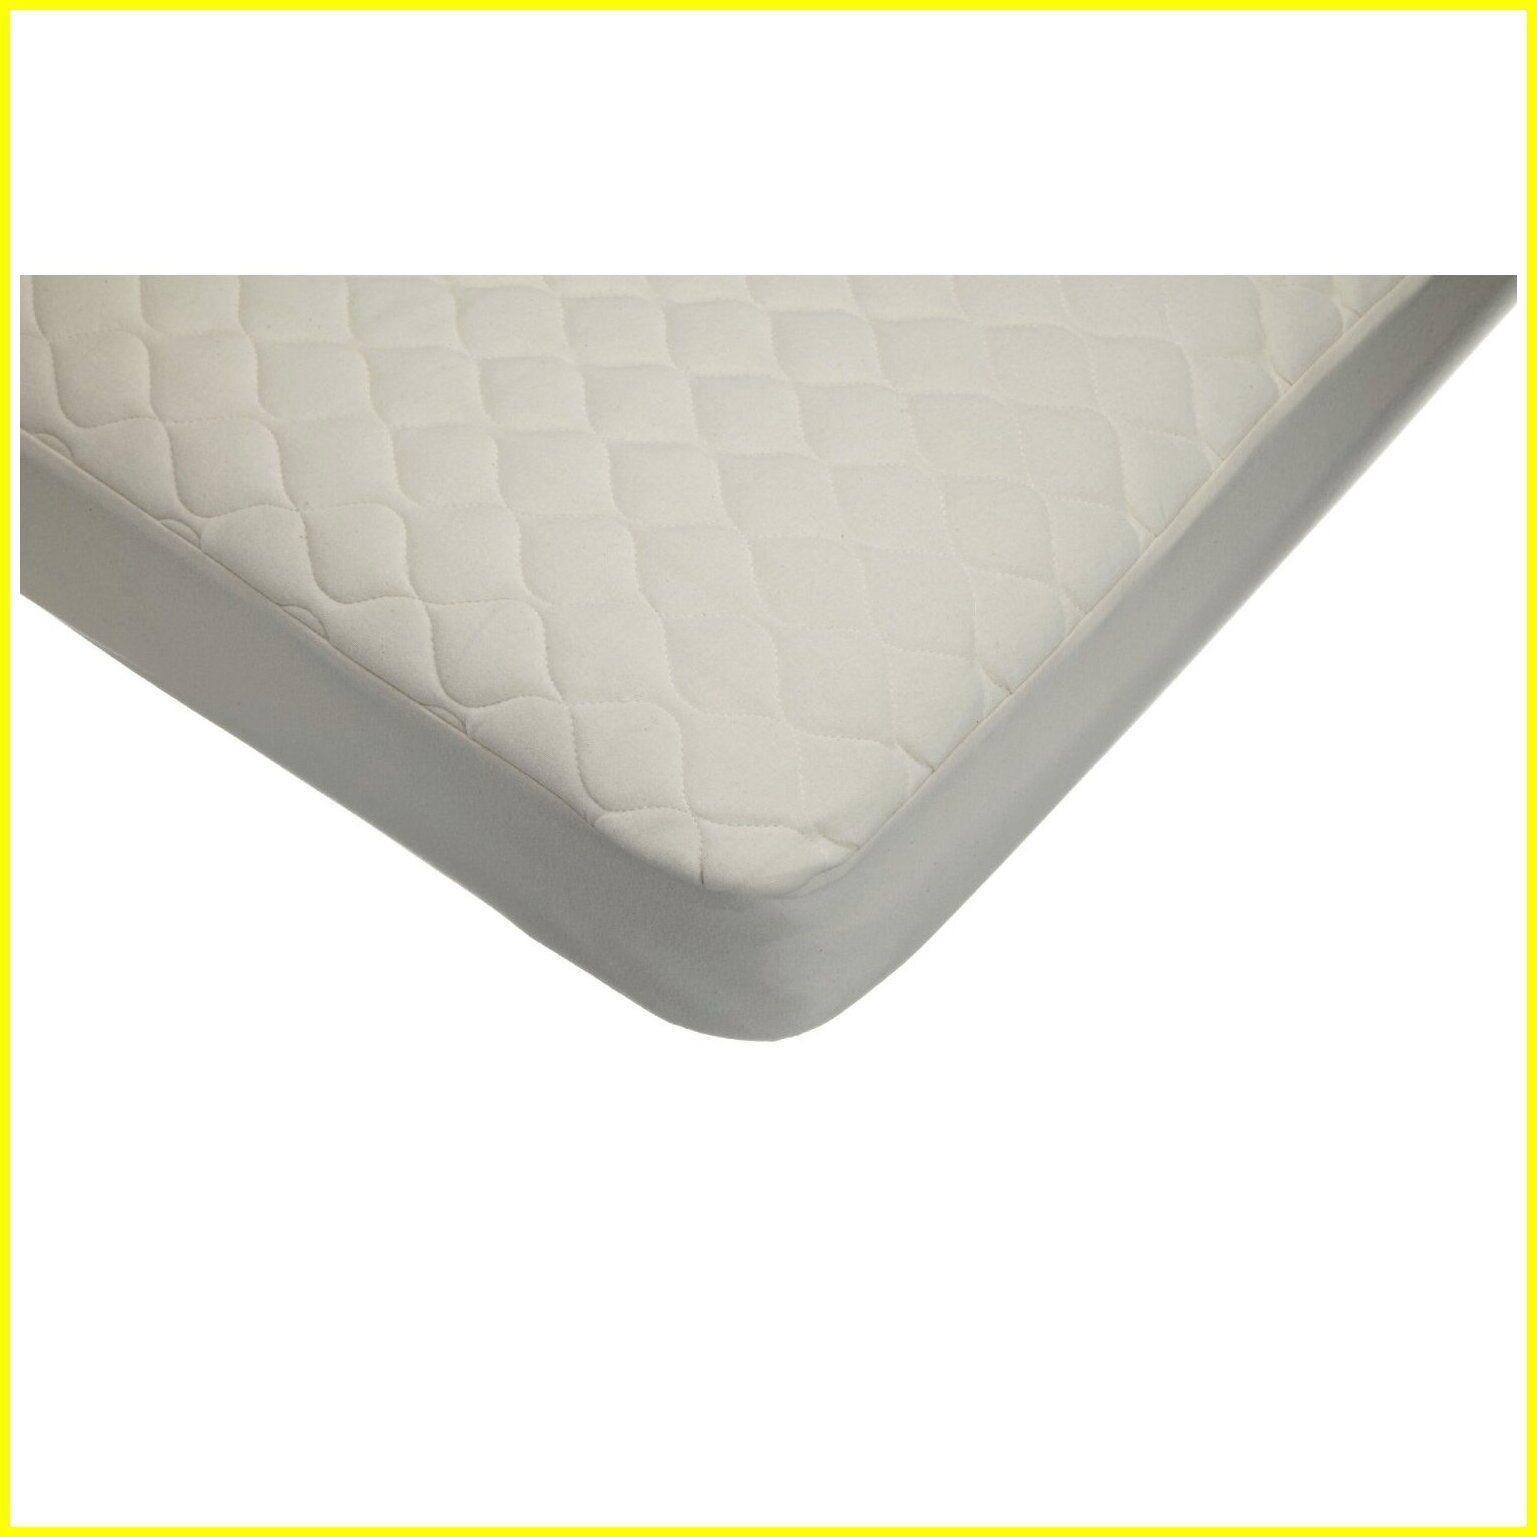 50 Off Only 7 99 Pack N Play Mattress Cover Waterproof Crib Mattress Pad Protector In 2020 Crib Mattress Pad Crib Mattress Protector Waterproof Crib Mattress Cover